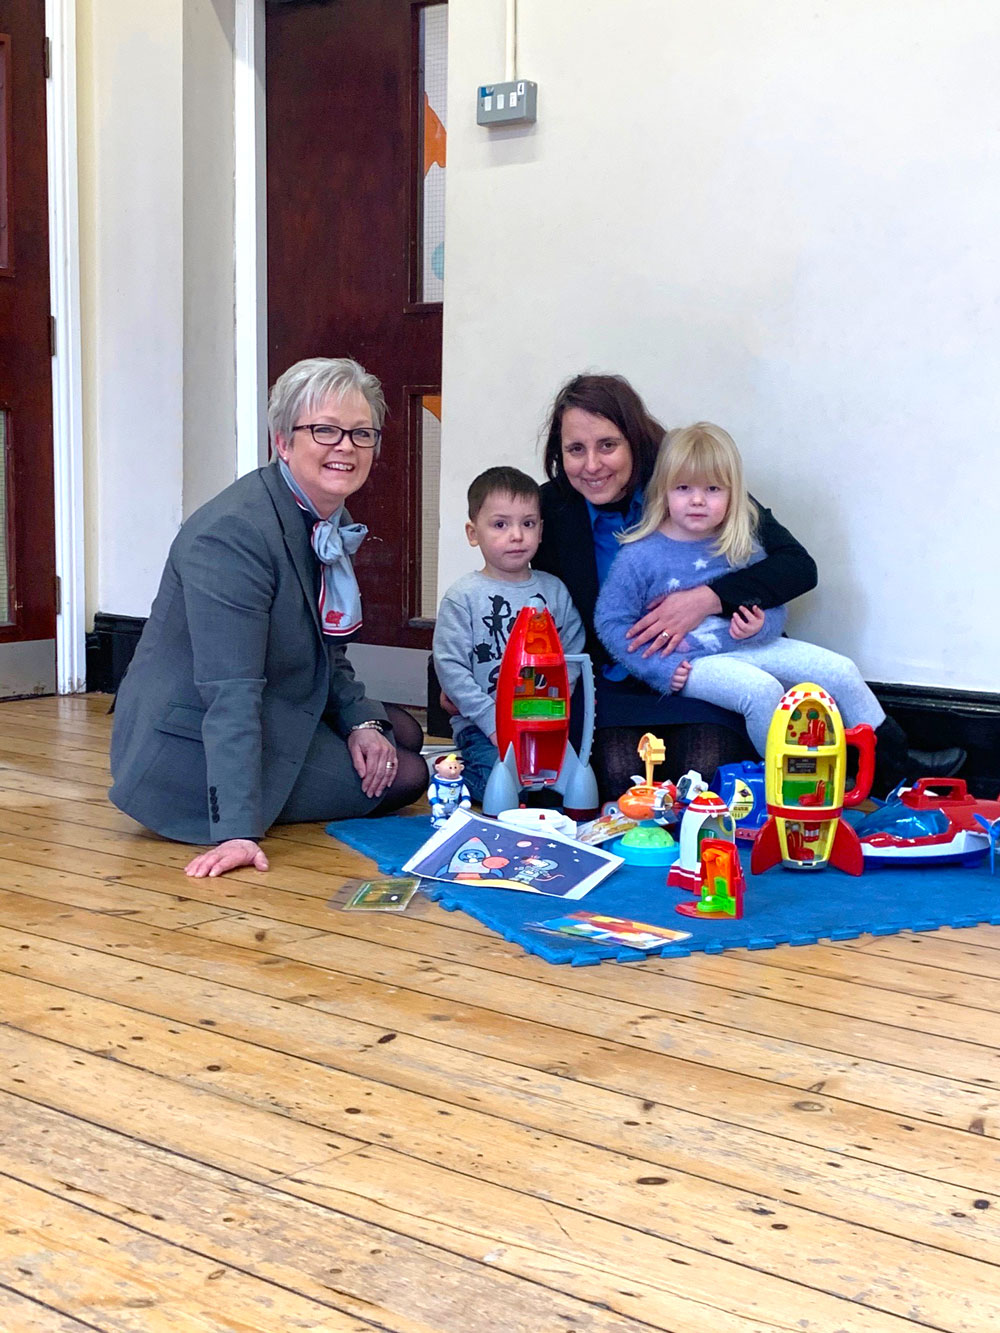 Peveril Homes goes top of the class after making generous donation to local pre-school!